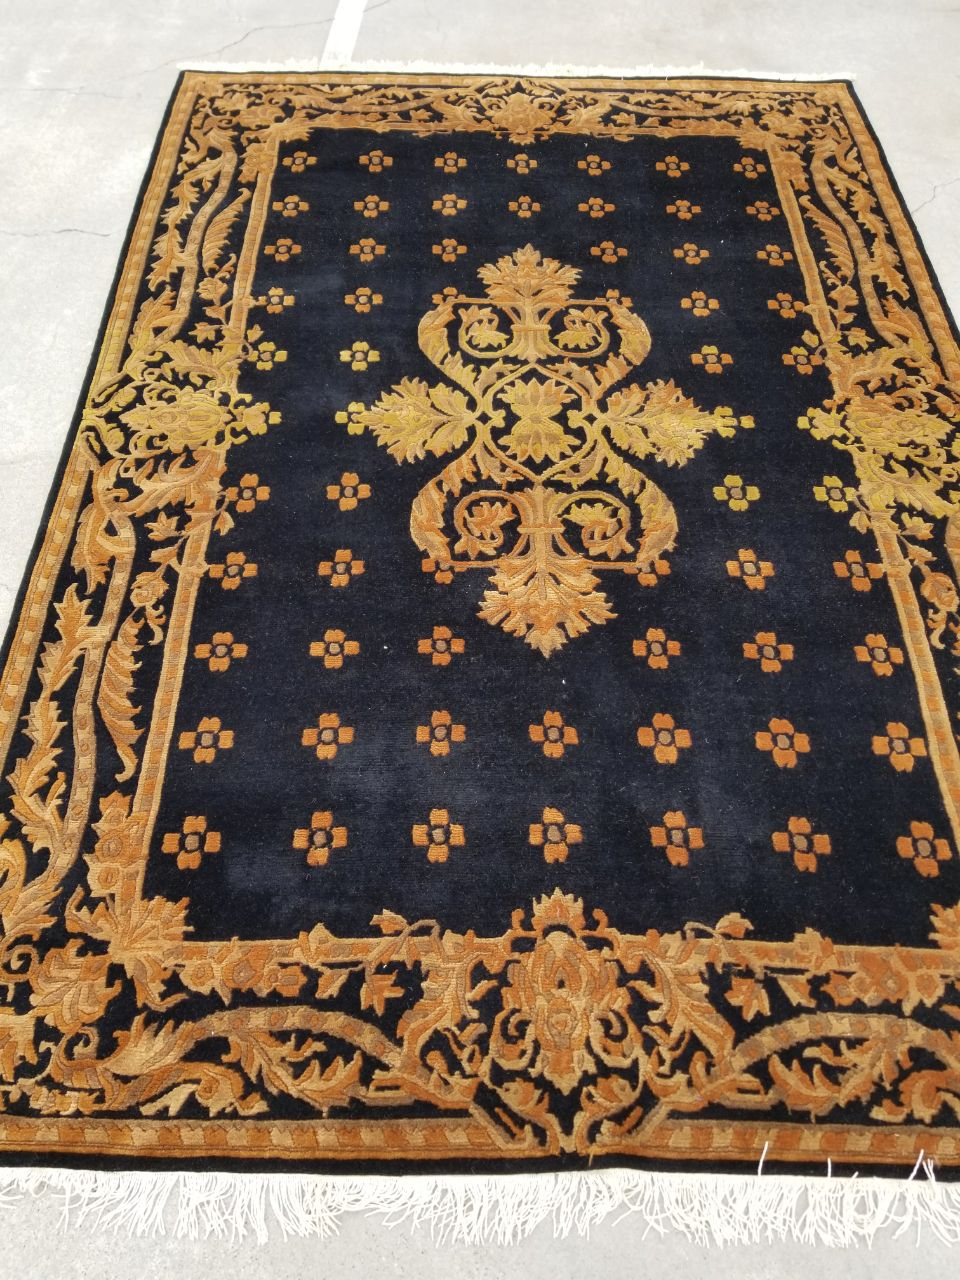 Rug Cleaning Services Near Me Rug Design Gallery